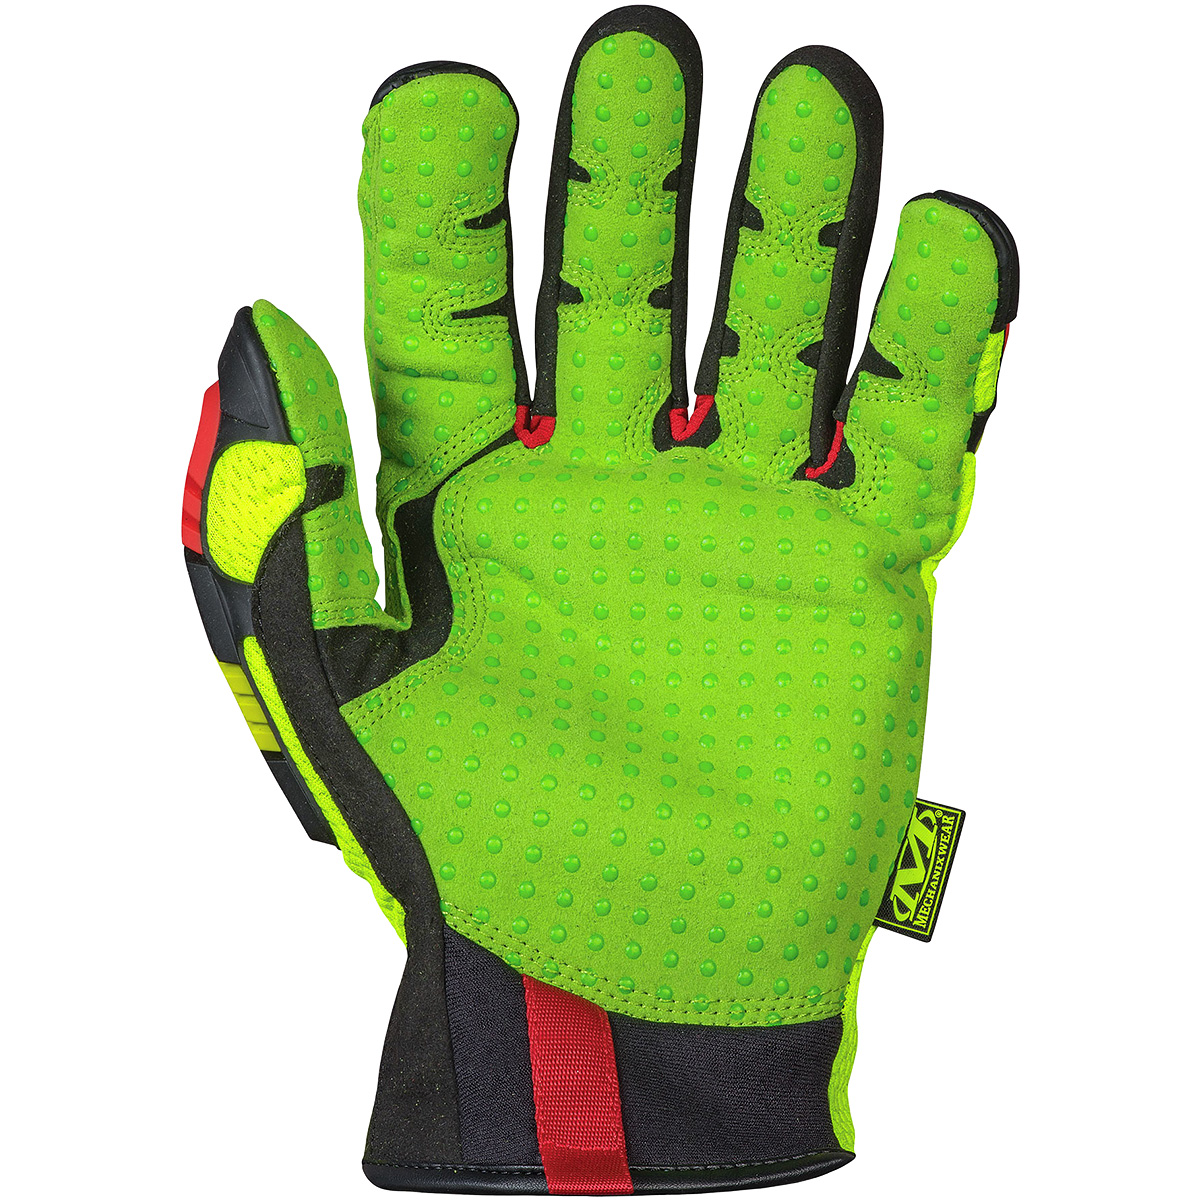 Leather work gloves m pact 2 - Sentinel Mechanix Wear The Safety M Pact Orhd Padded Mens Work Gloves Hi Viz Yellow